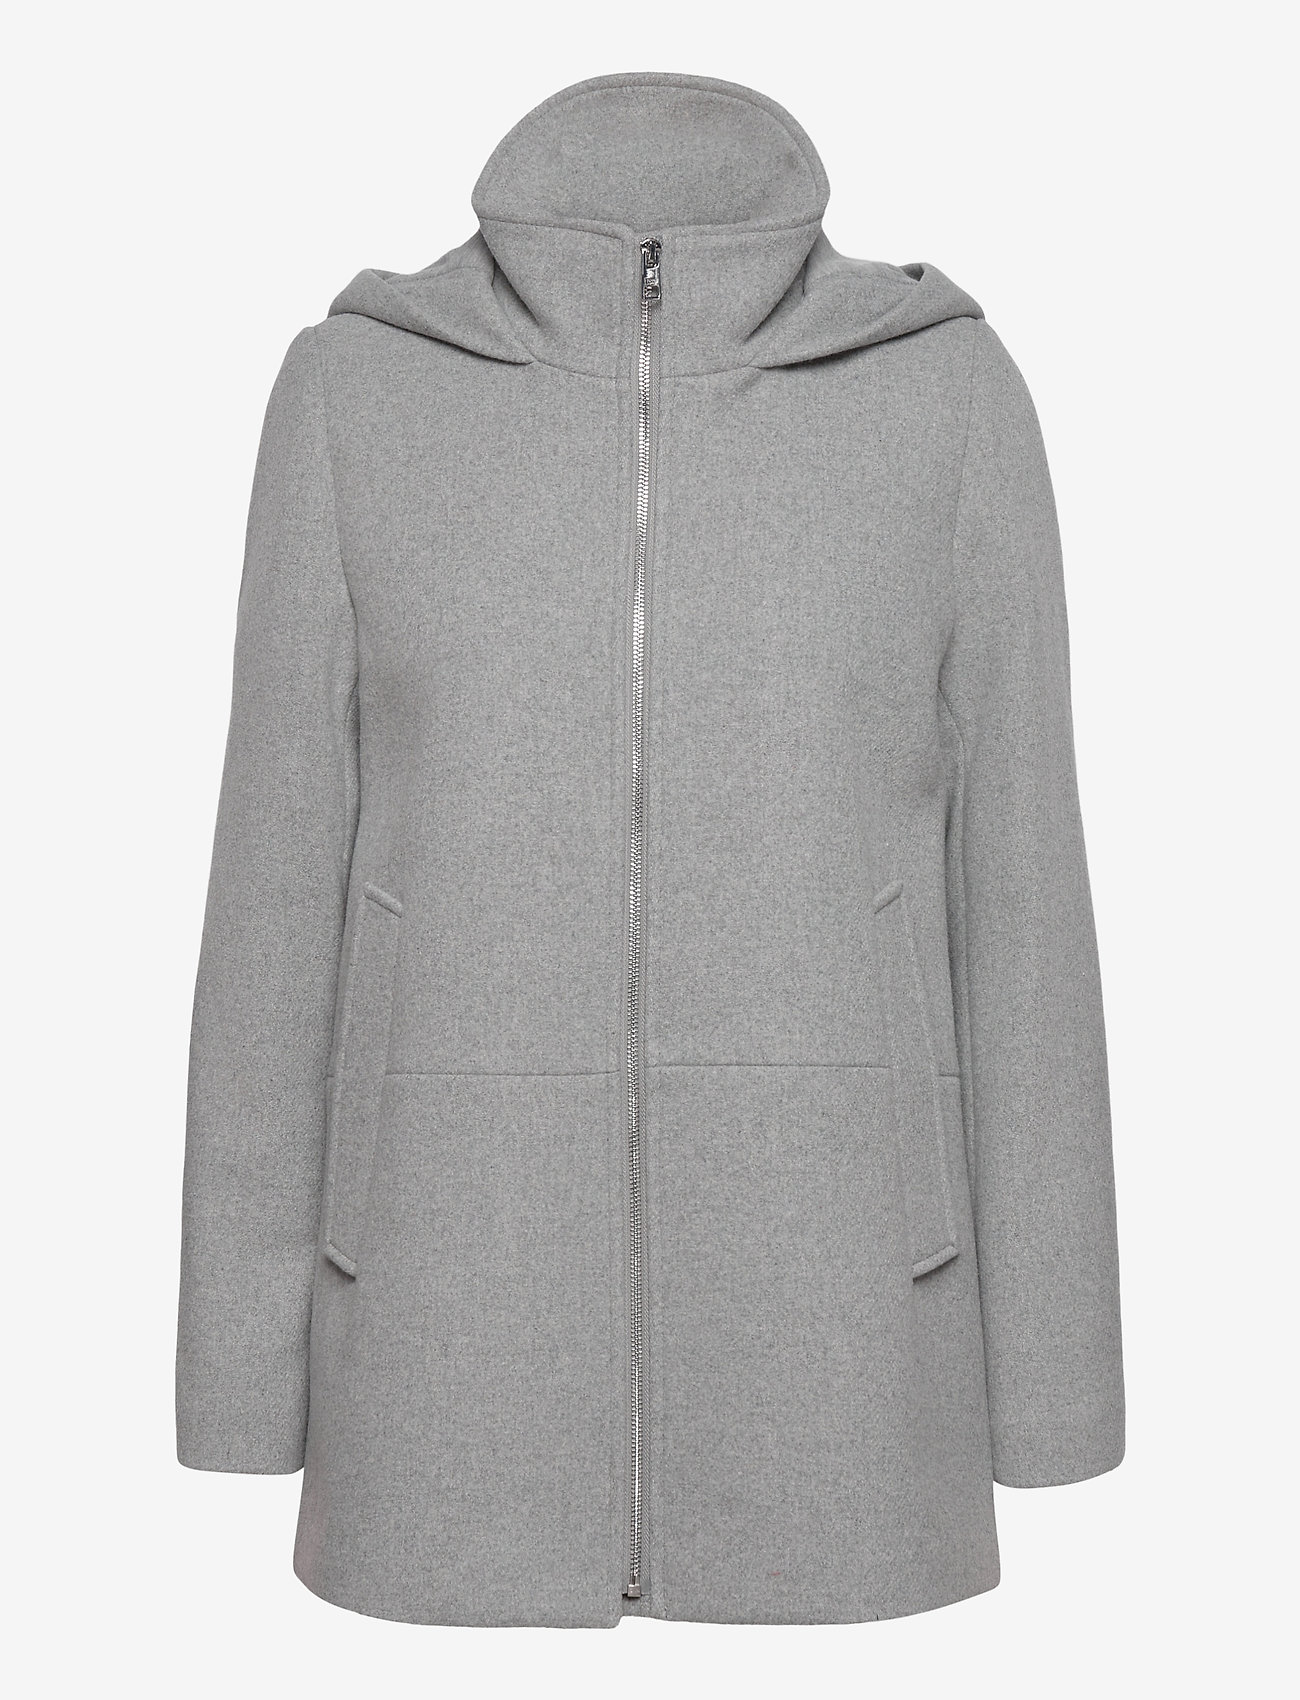 Esprit Casual - Jackets outdoor woven - light grey 5 - 1